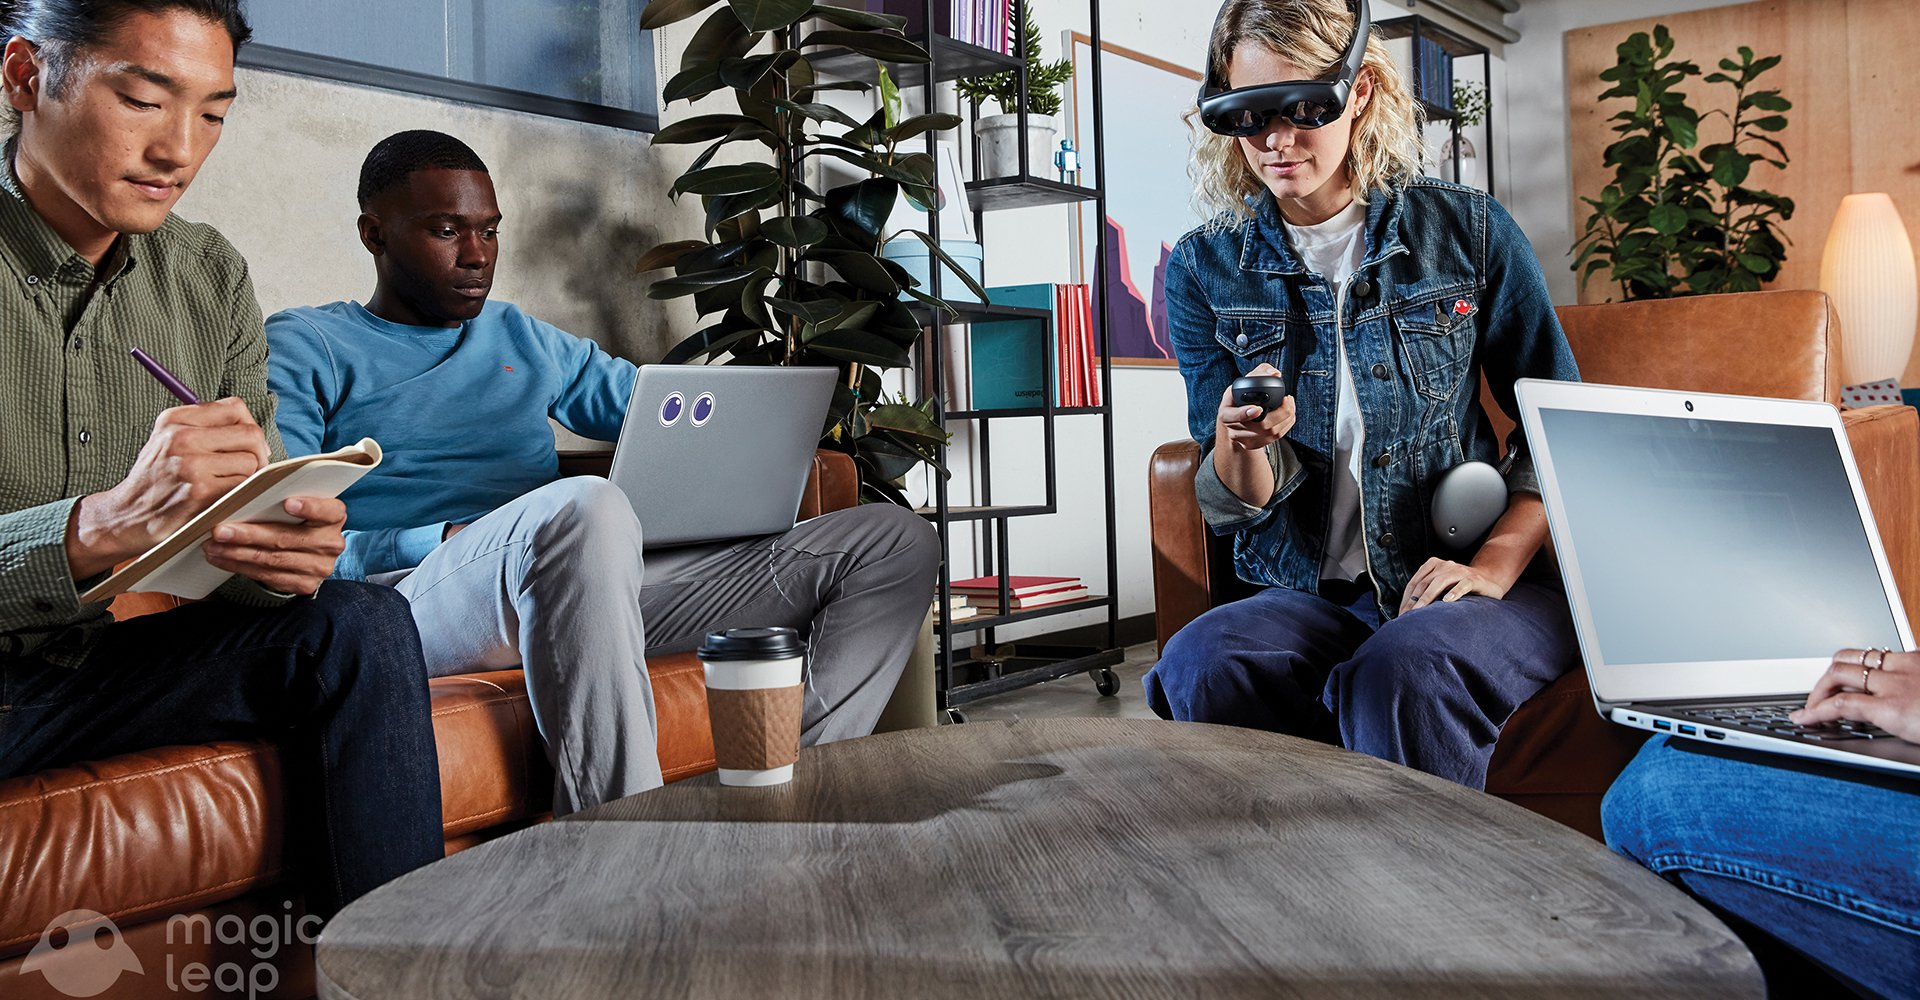 Image Copyright: Magic Leap (Used under Fair Use Rationale)